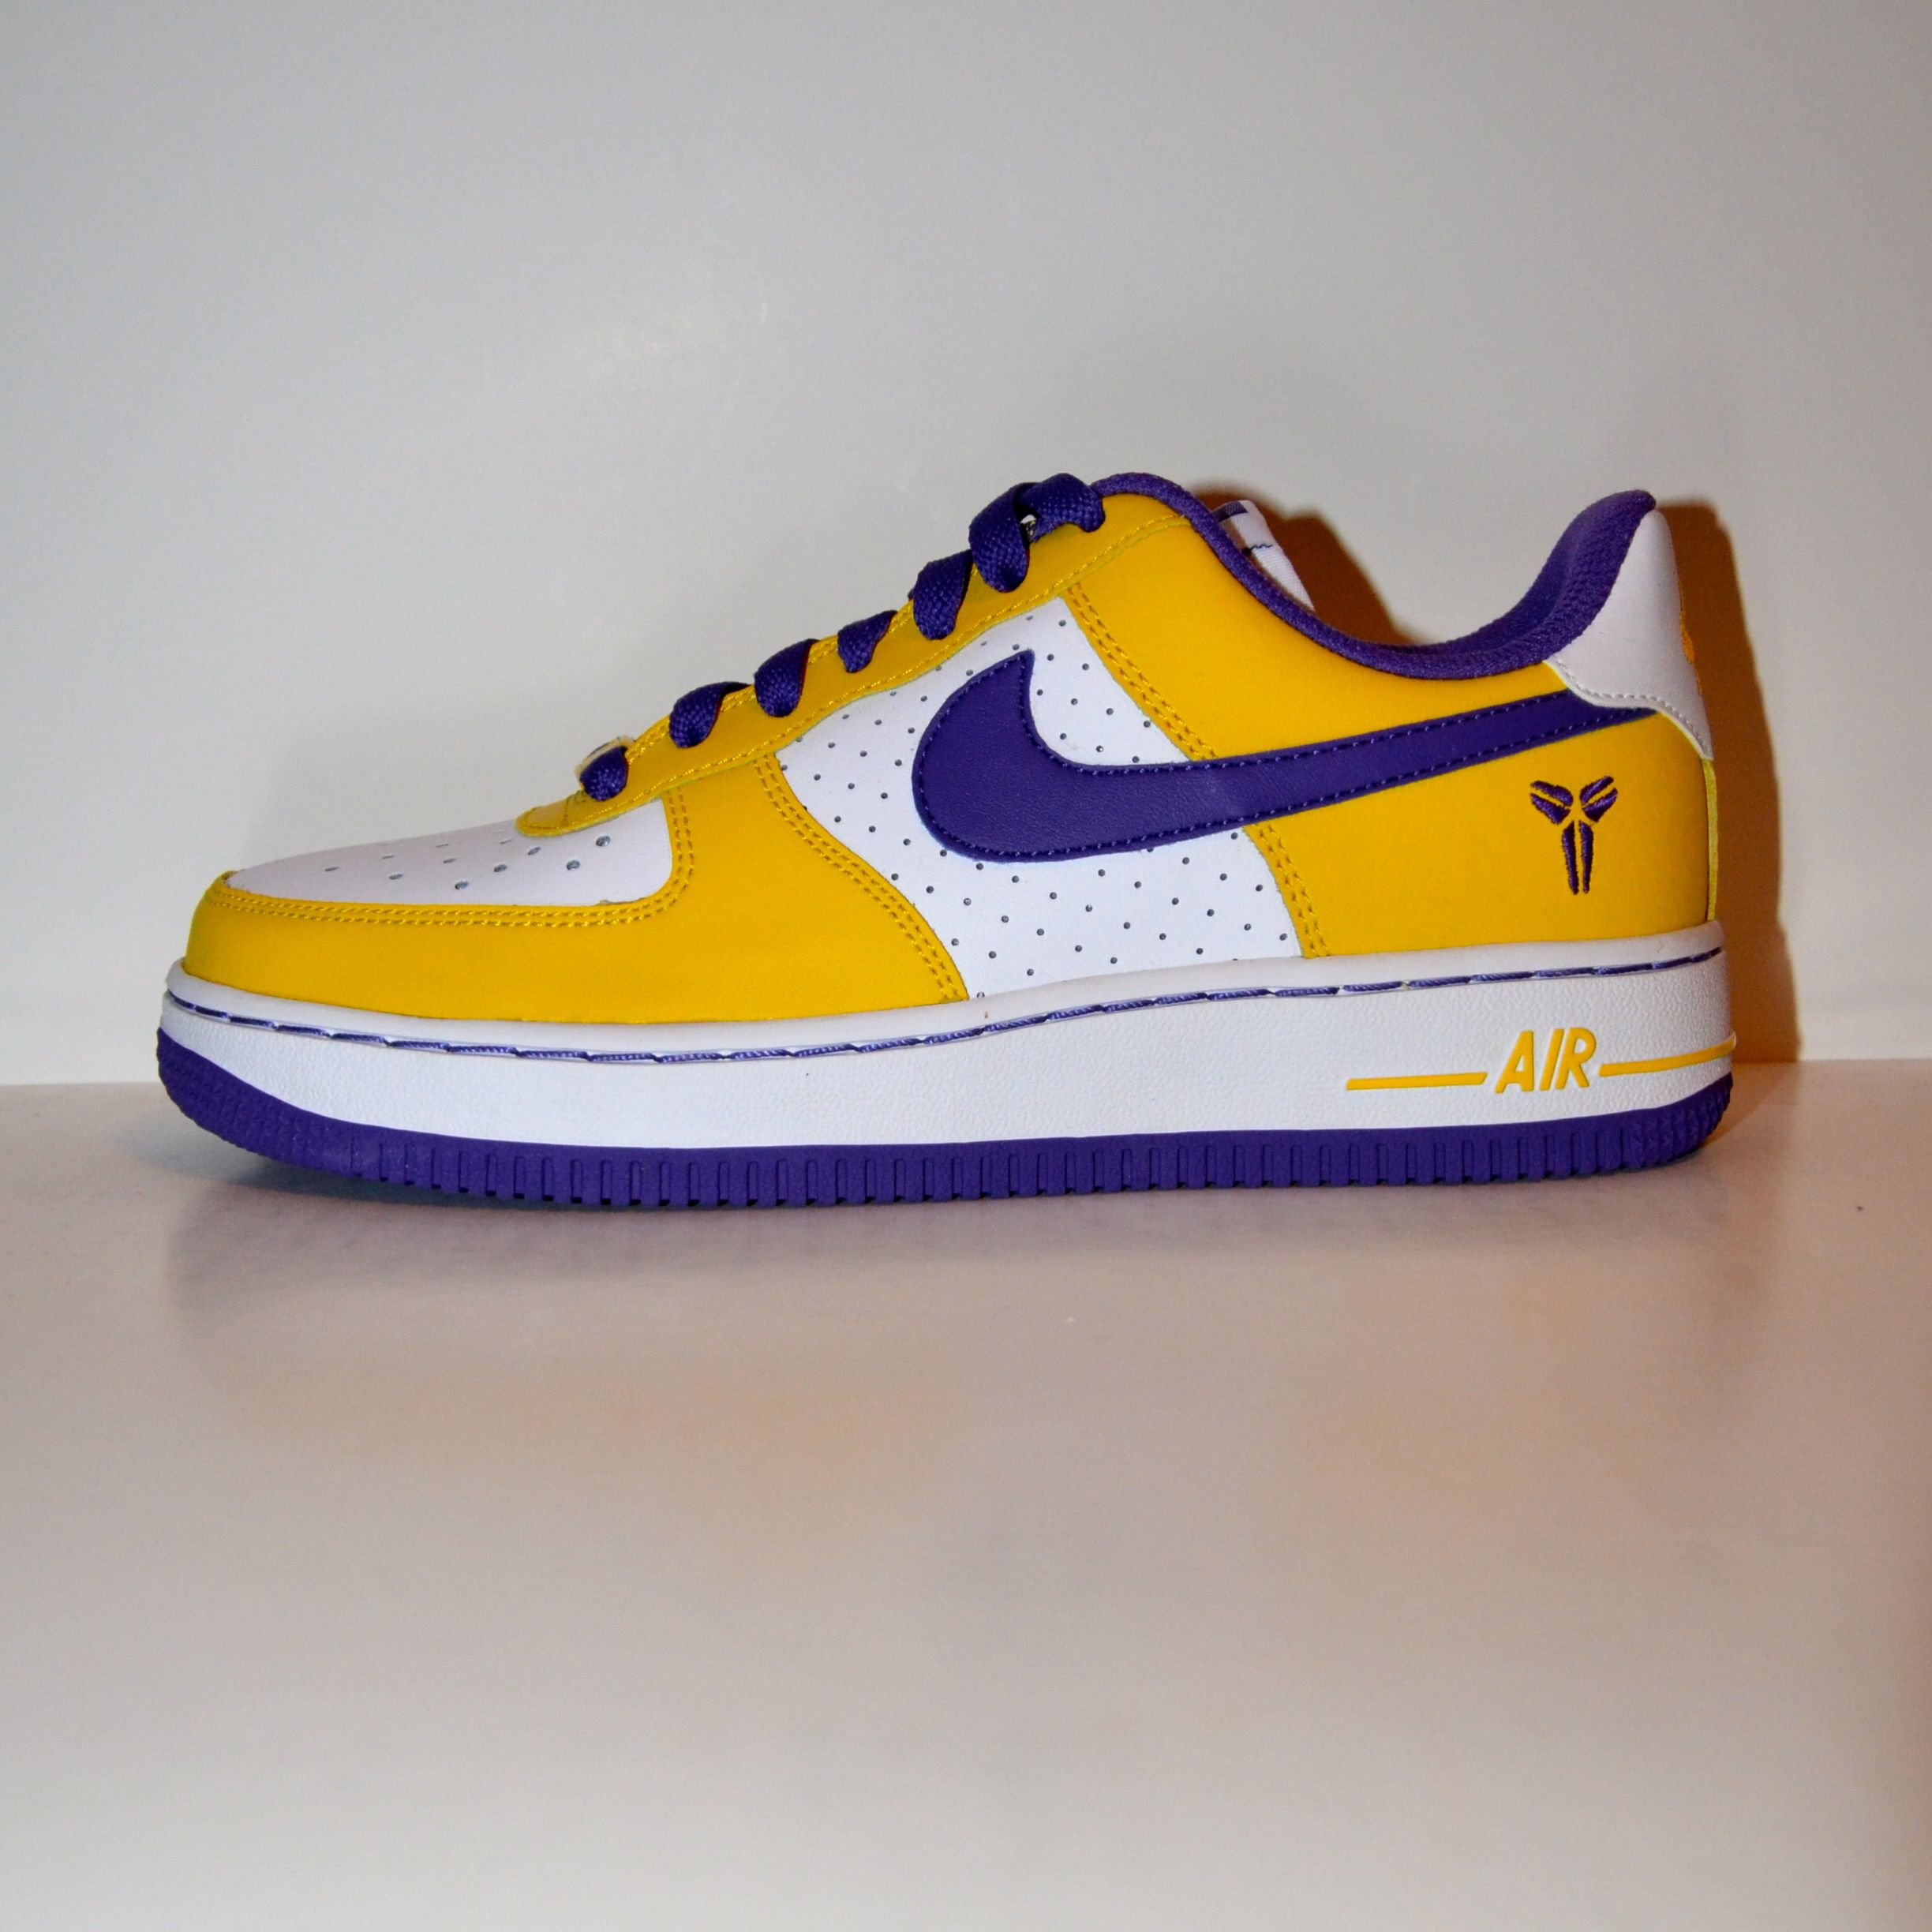 Nike Air Force One Low 'Kobe' Youth DS (1010) OG Box | Nike